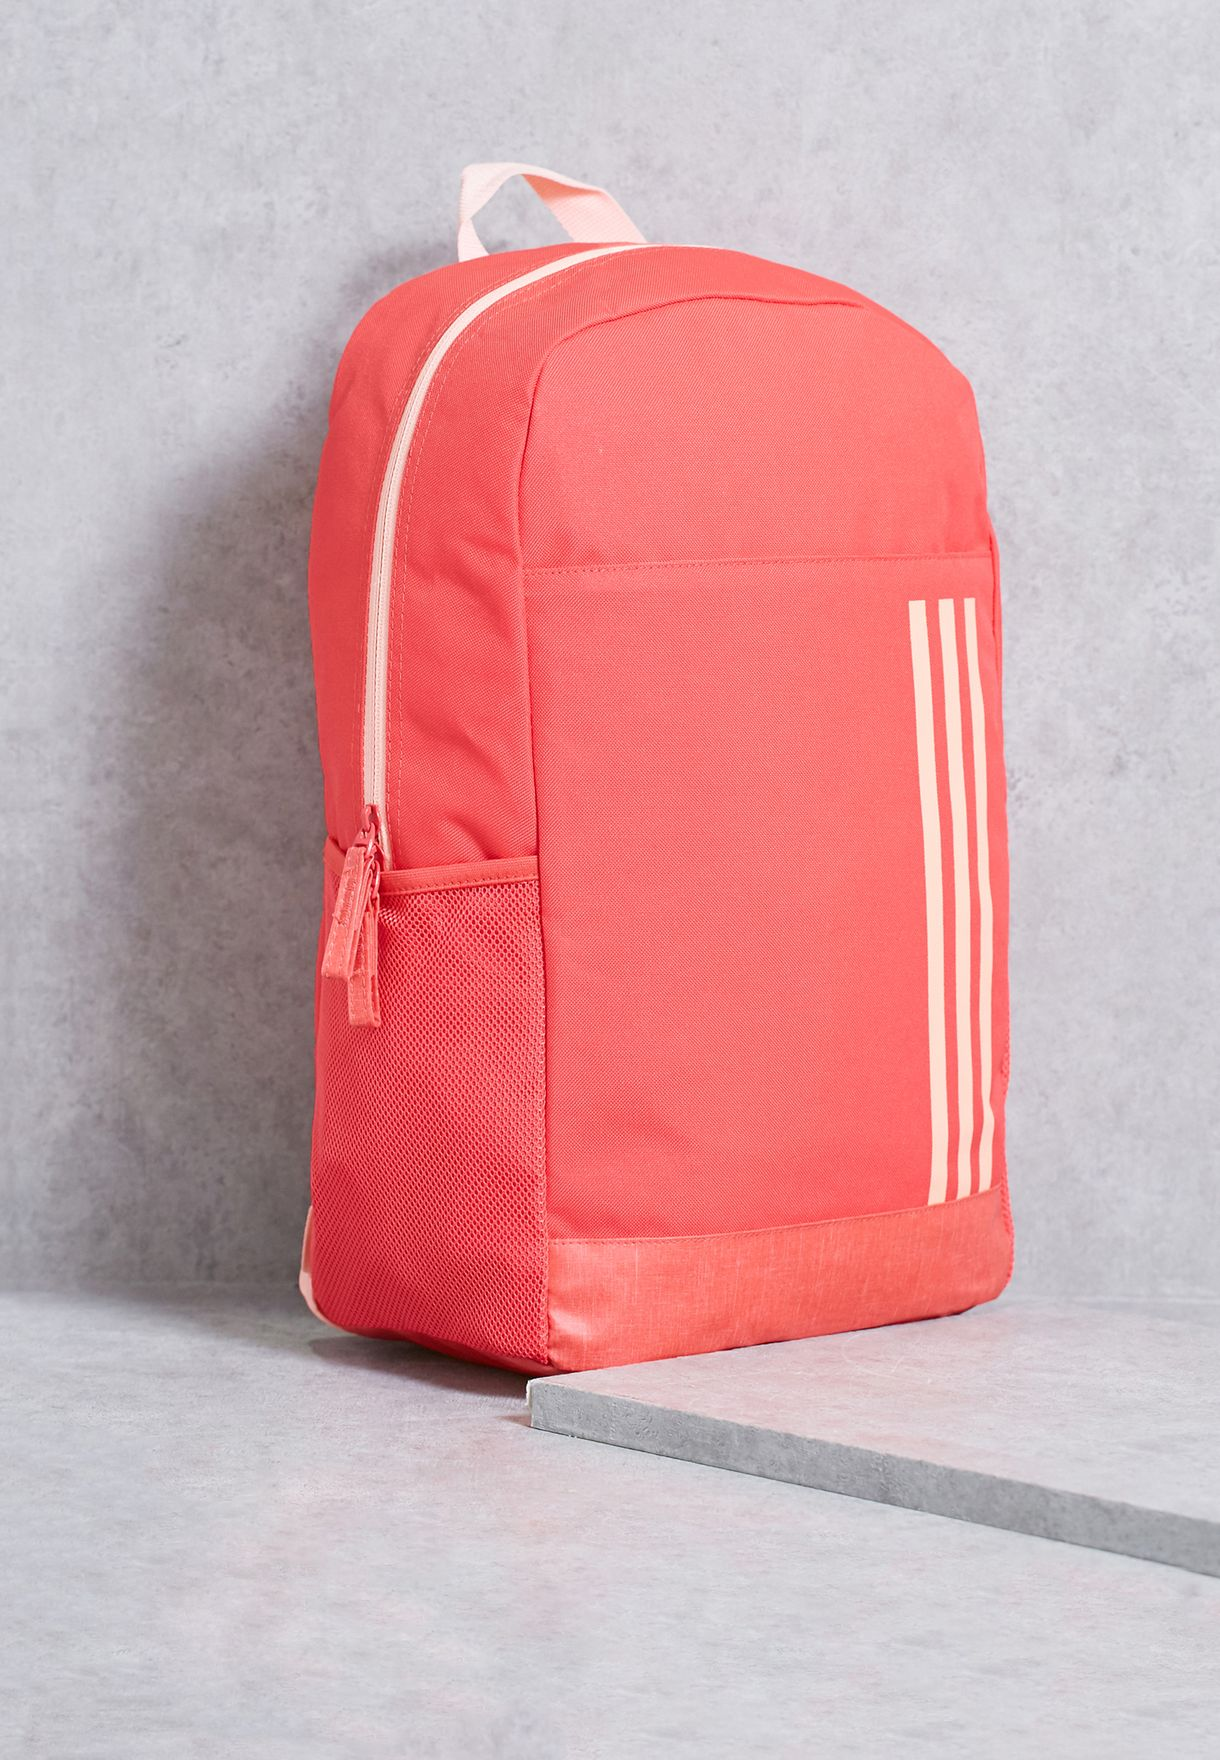 Shop adidas pink Medium Classic 3S Backpack S99850 for Women in Bahrain -  AD476AC06BQN 8225718e52667